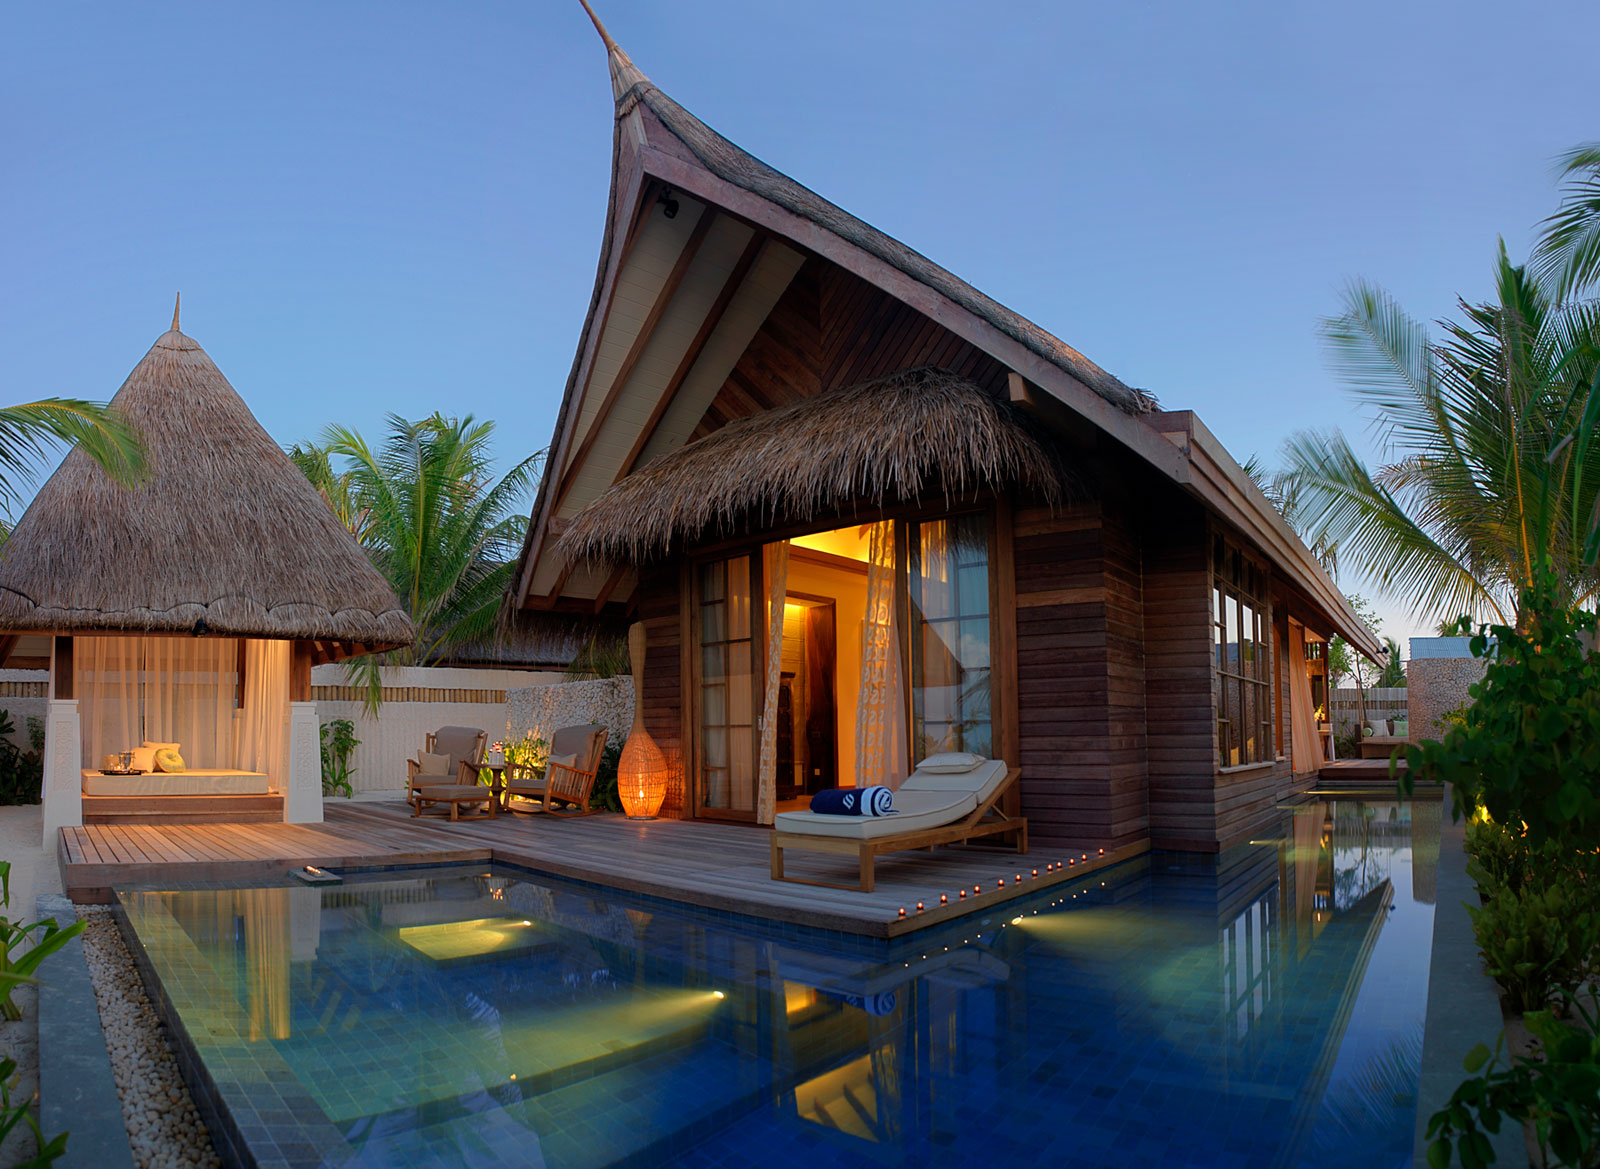 Jumeirah vittaveli resort in maldives architecture design for Beach villa design ideas